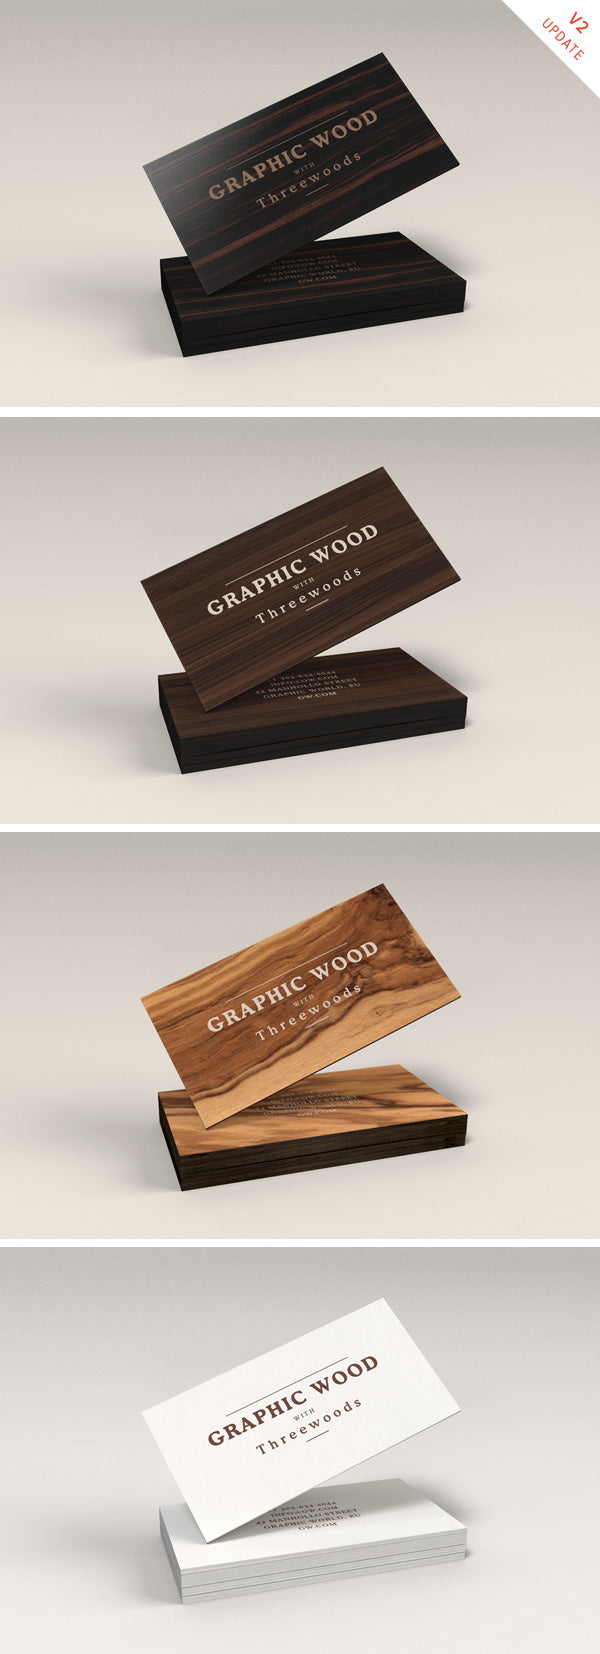 Free Wooden Business Cards MockUp - CreativeBooster